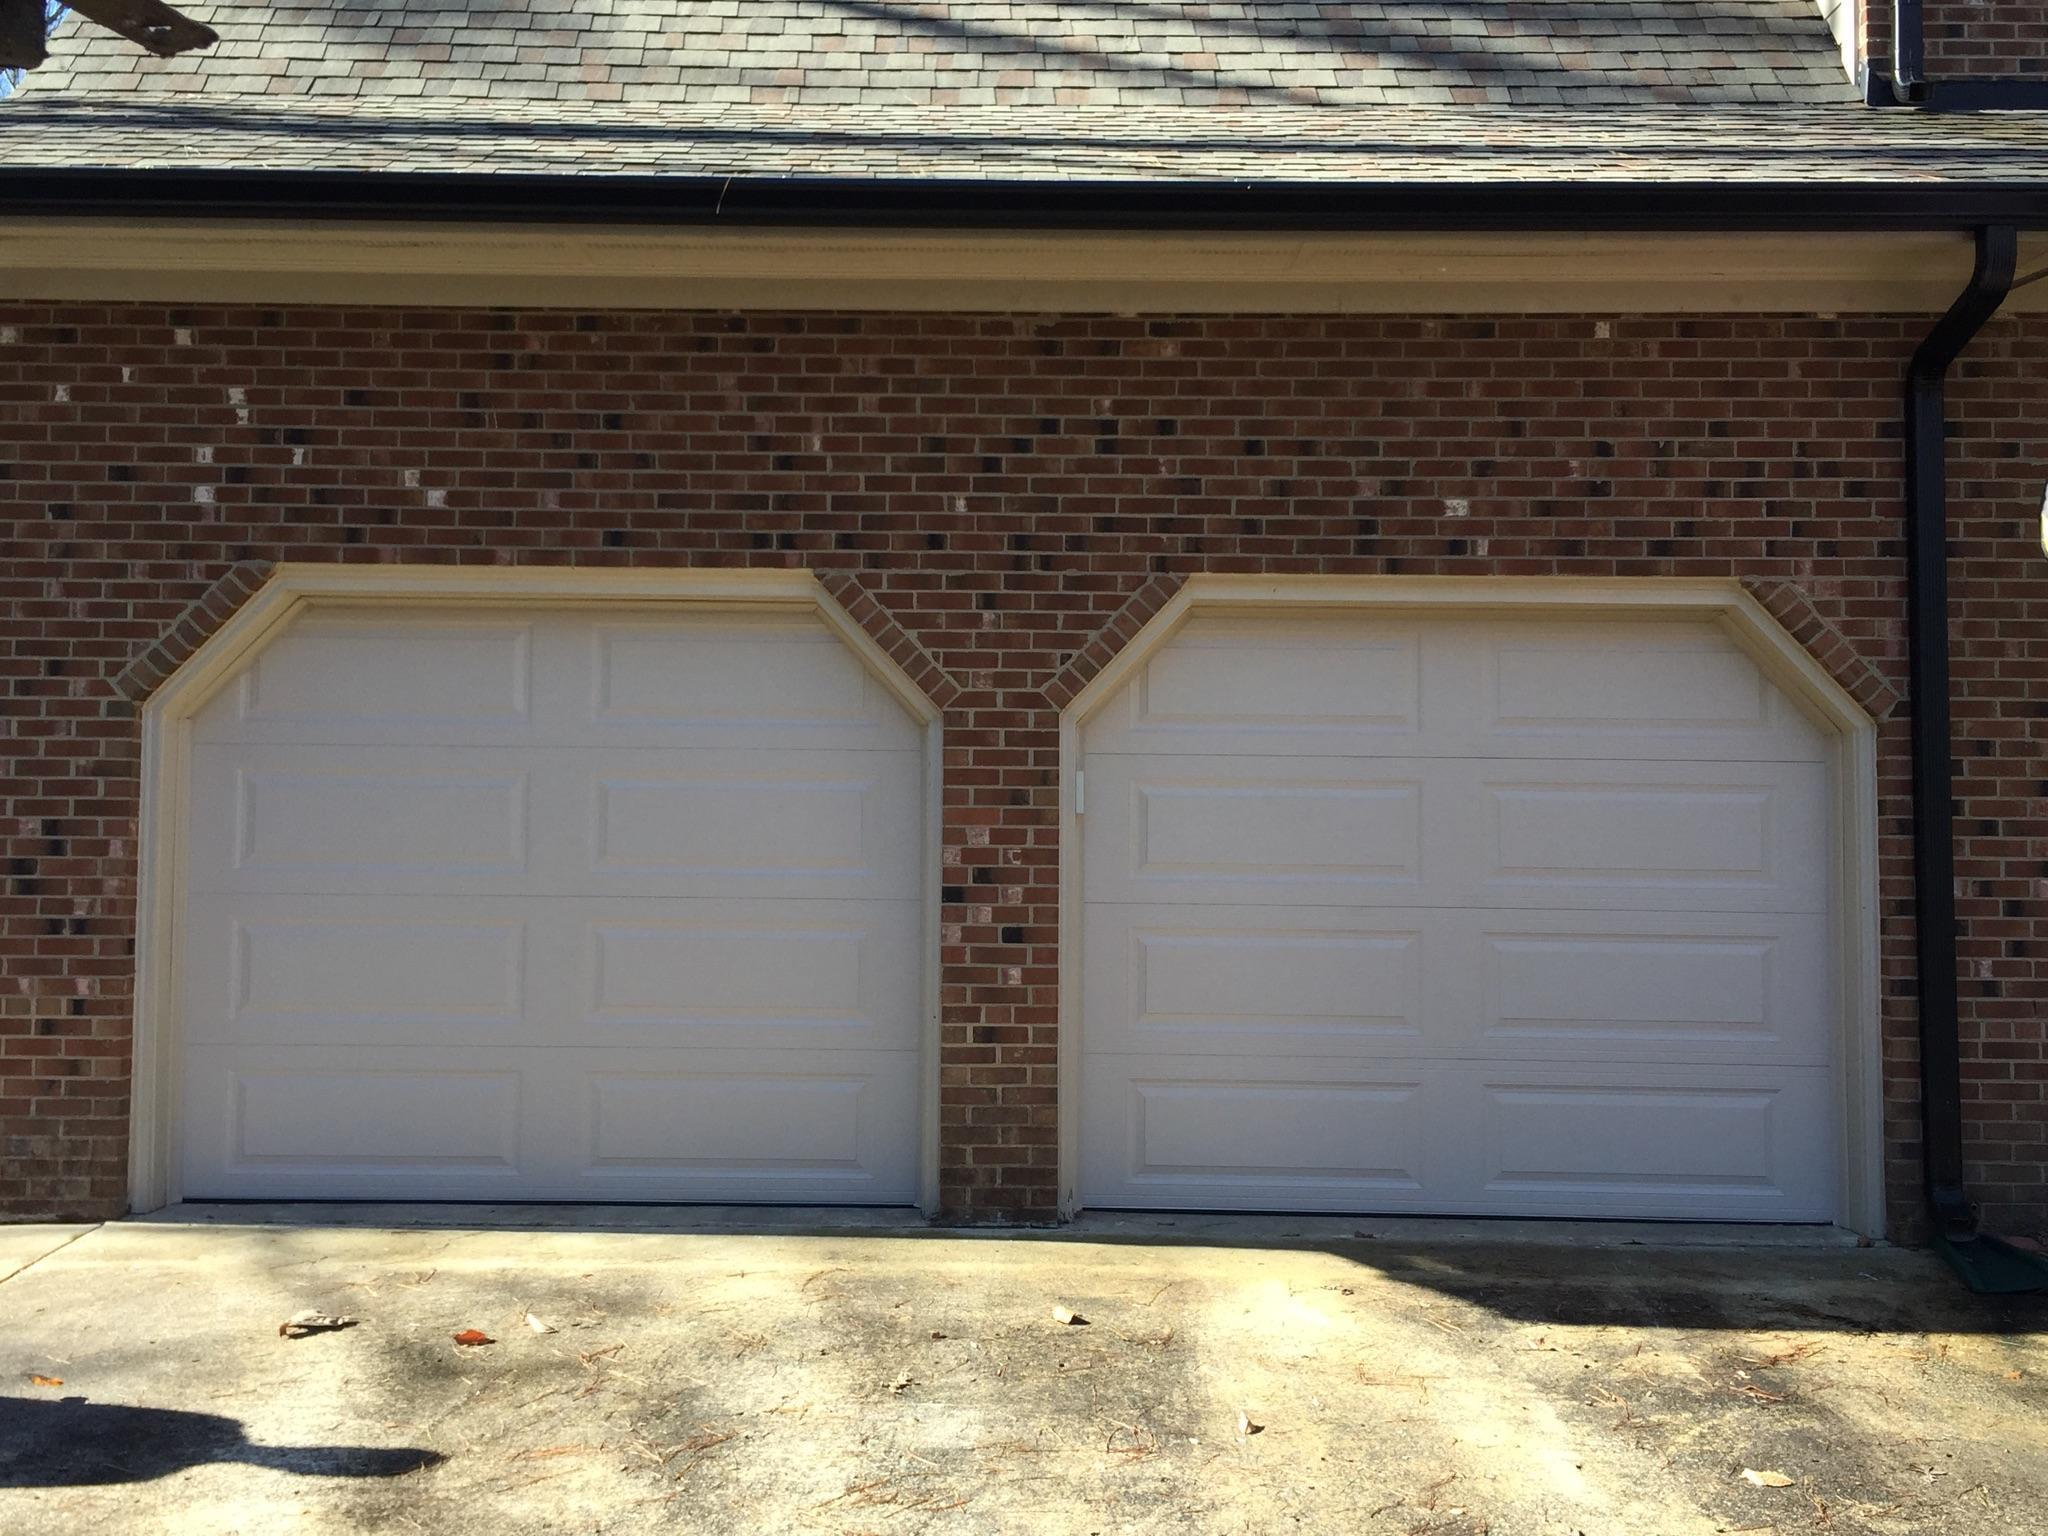 1536 #988833 All American Overhead Garage Door Inc. In Wendell NC 27591  image Overhead Garage Doors Residential Reviews 37132048